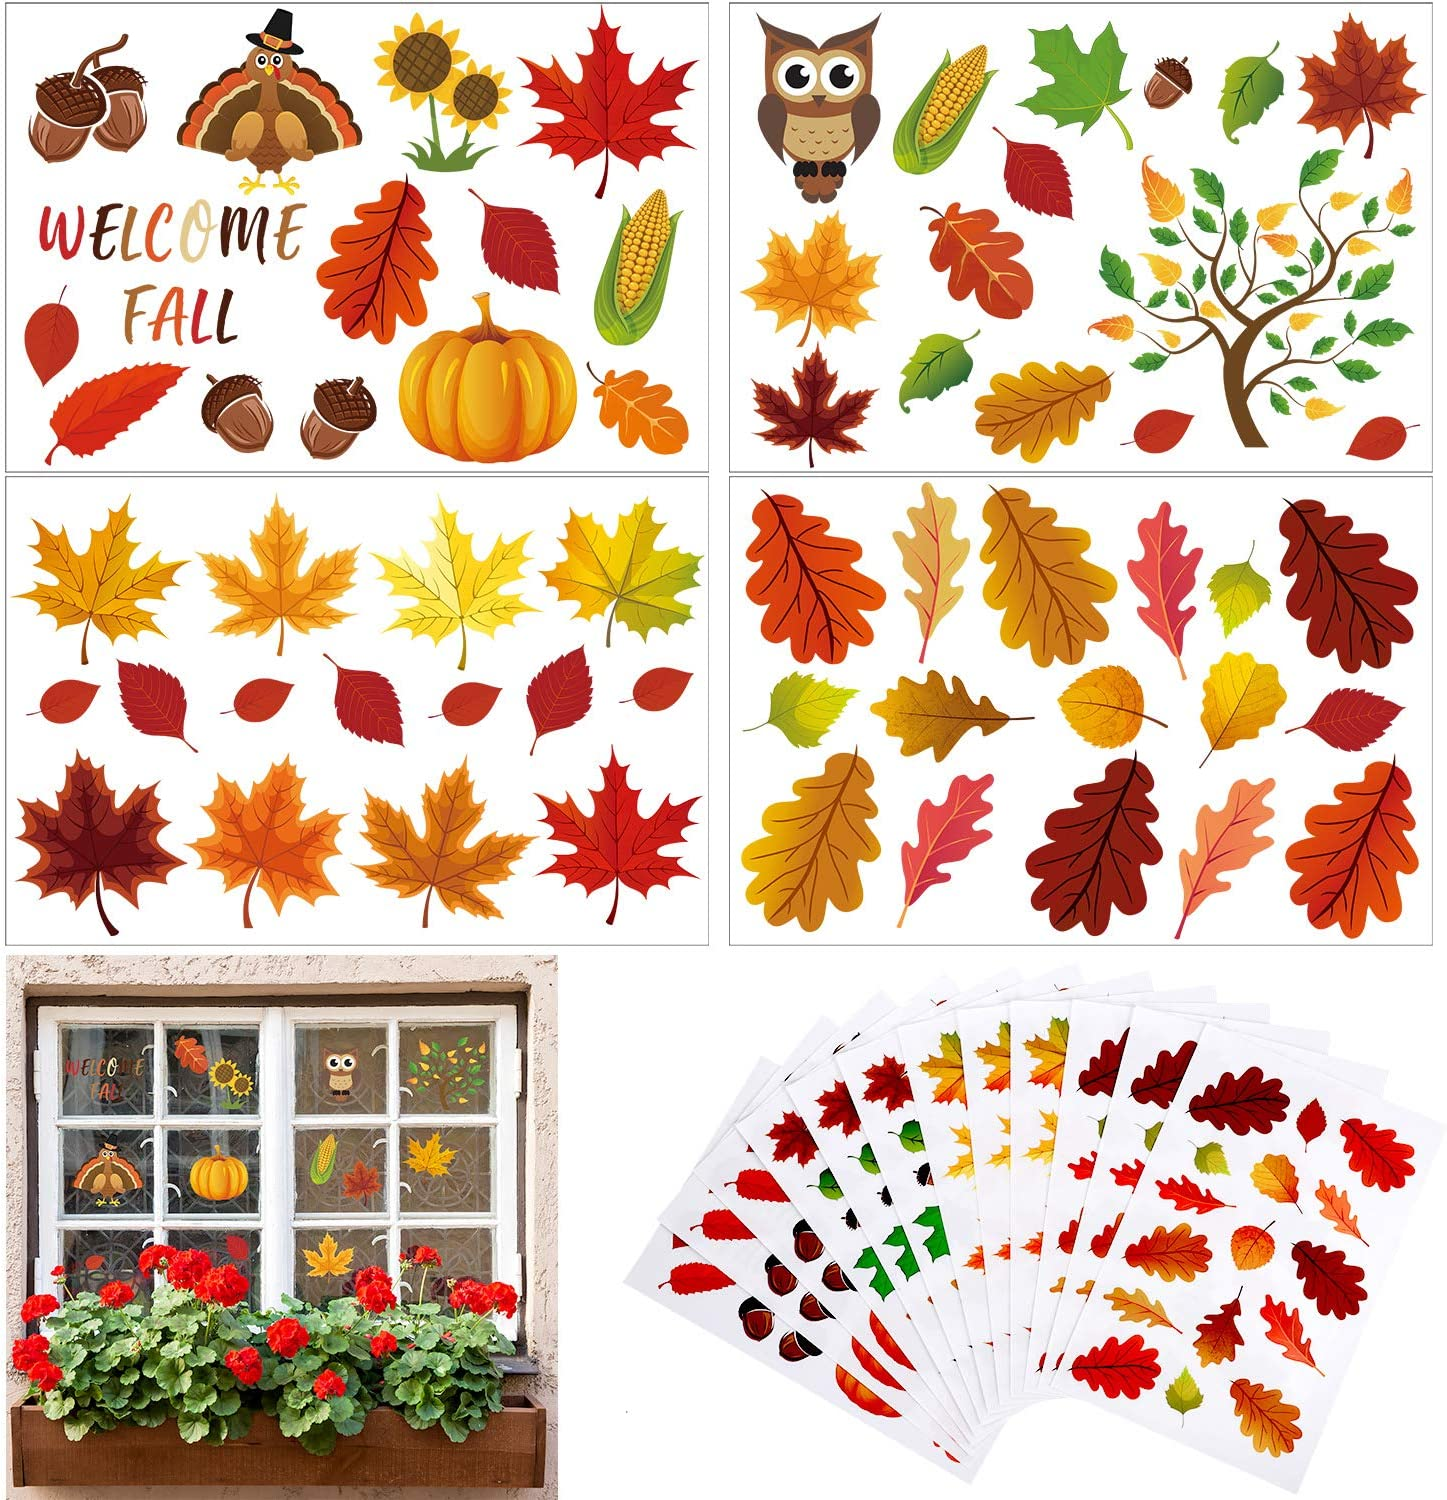 180 Pieces Thanksgiving Fall Autumn Leaves Acorns Window Sticker Maple Decorations Autumn Decals Party Decor Ornaments